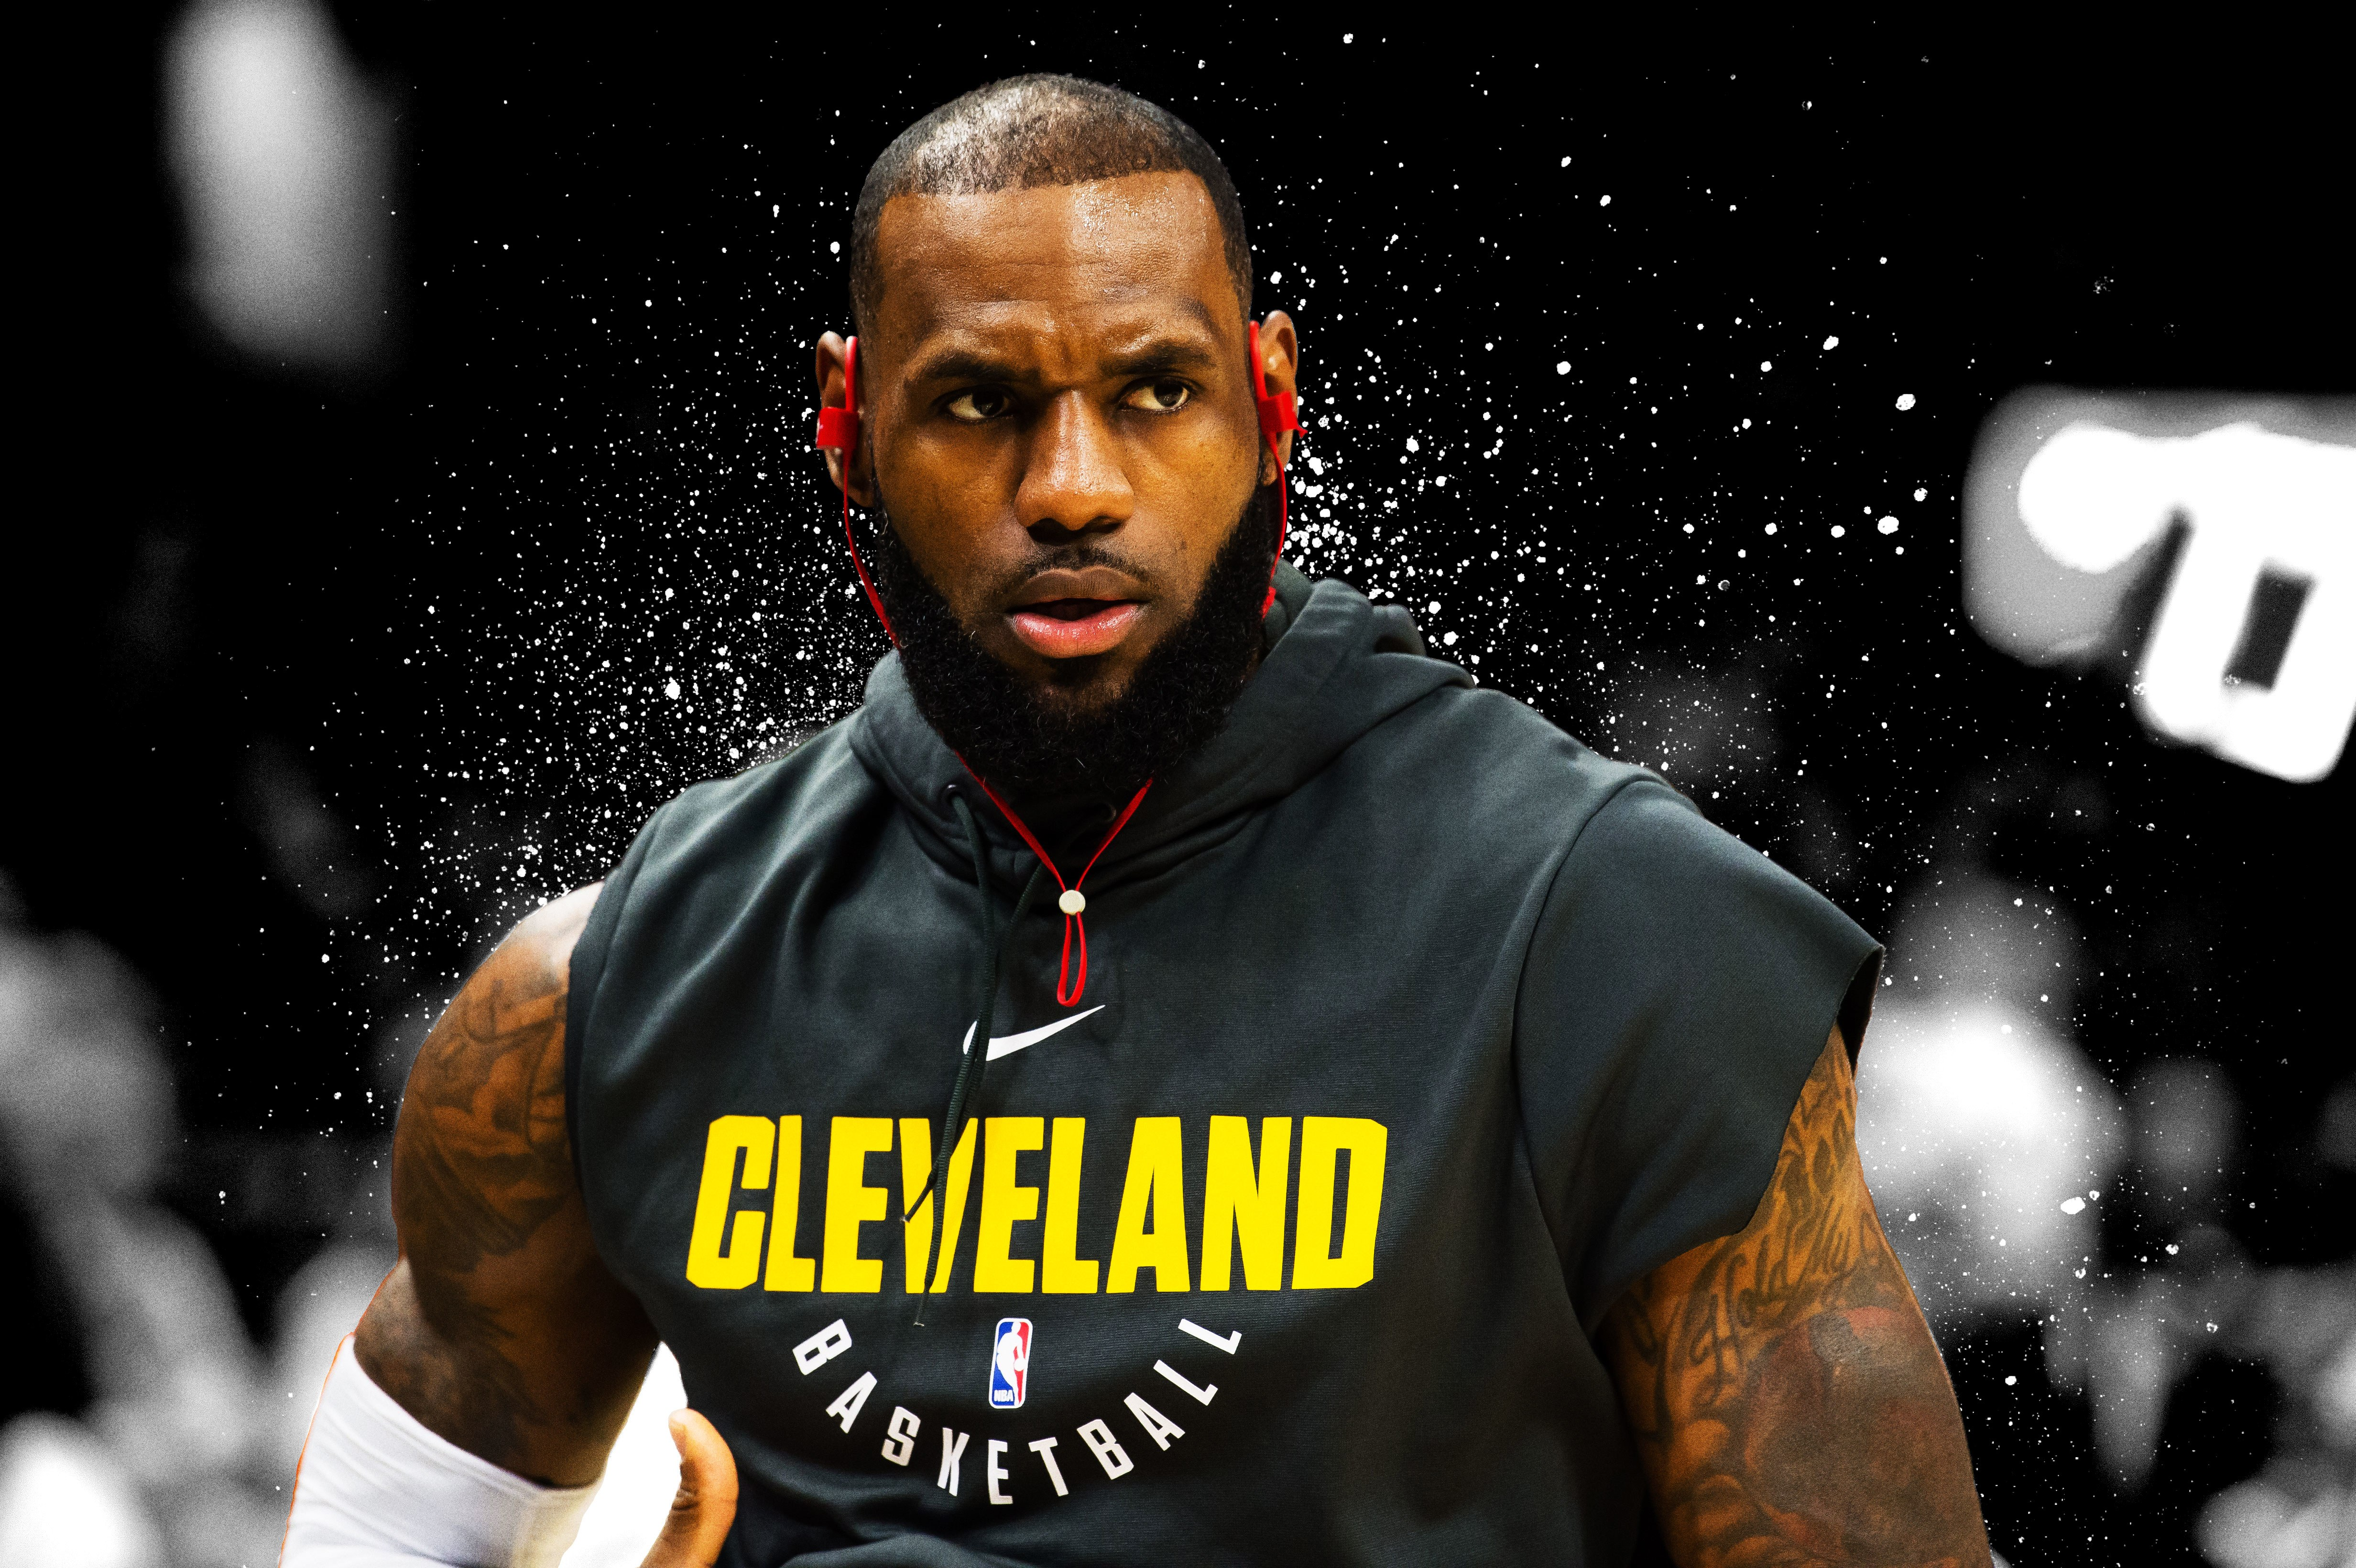 1920x1080 Lebron James 5k Laptop Full Hd 1080p Hd 4k Wallpapers Images Backgrounds Photos And Pictures